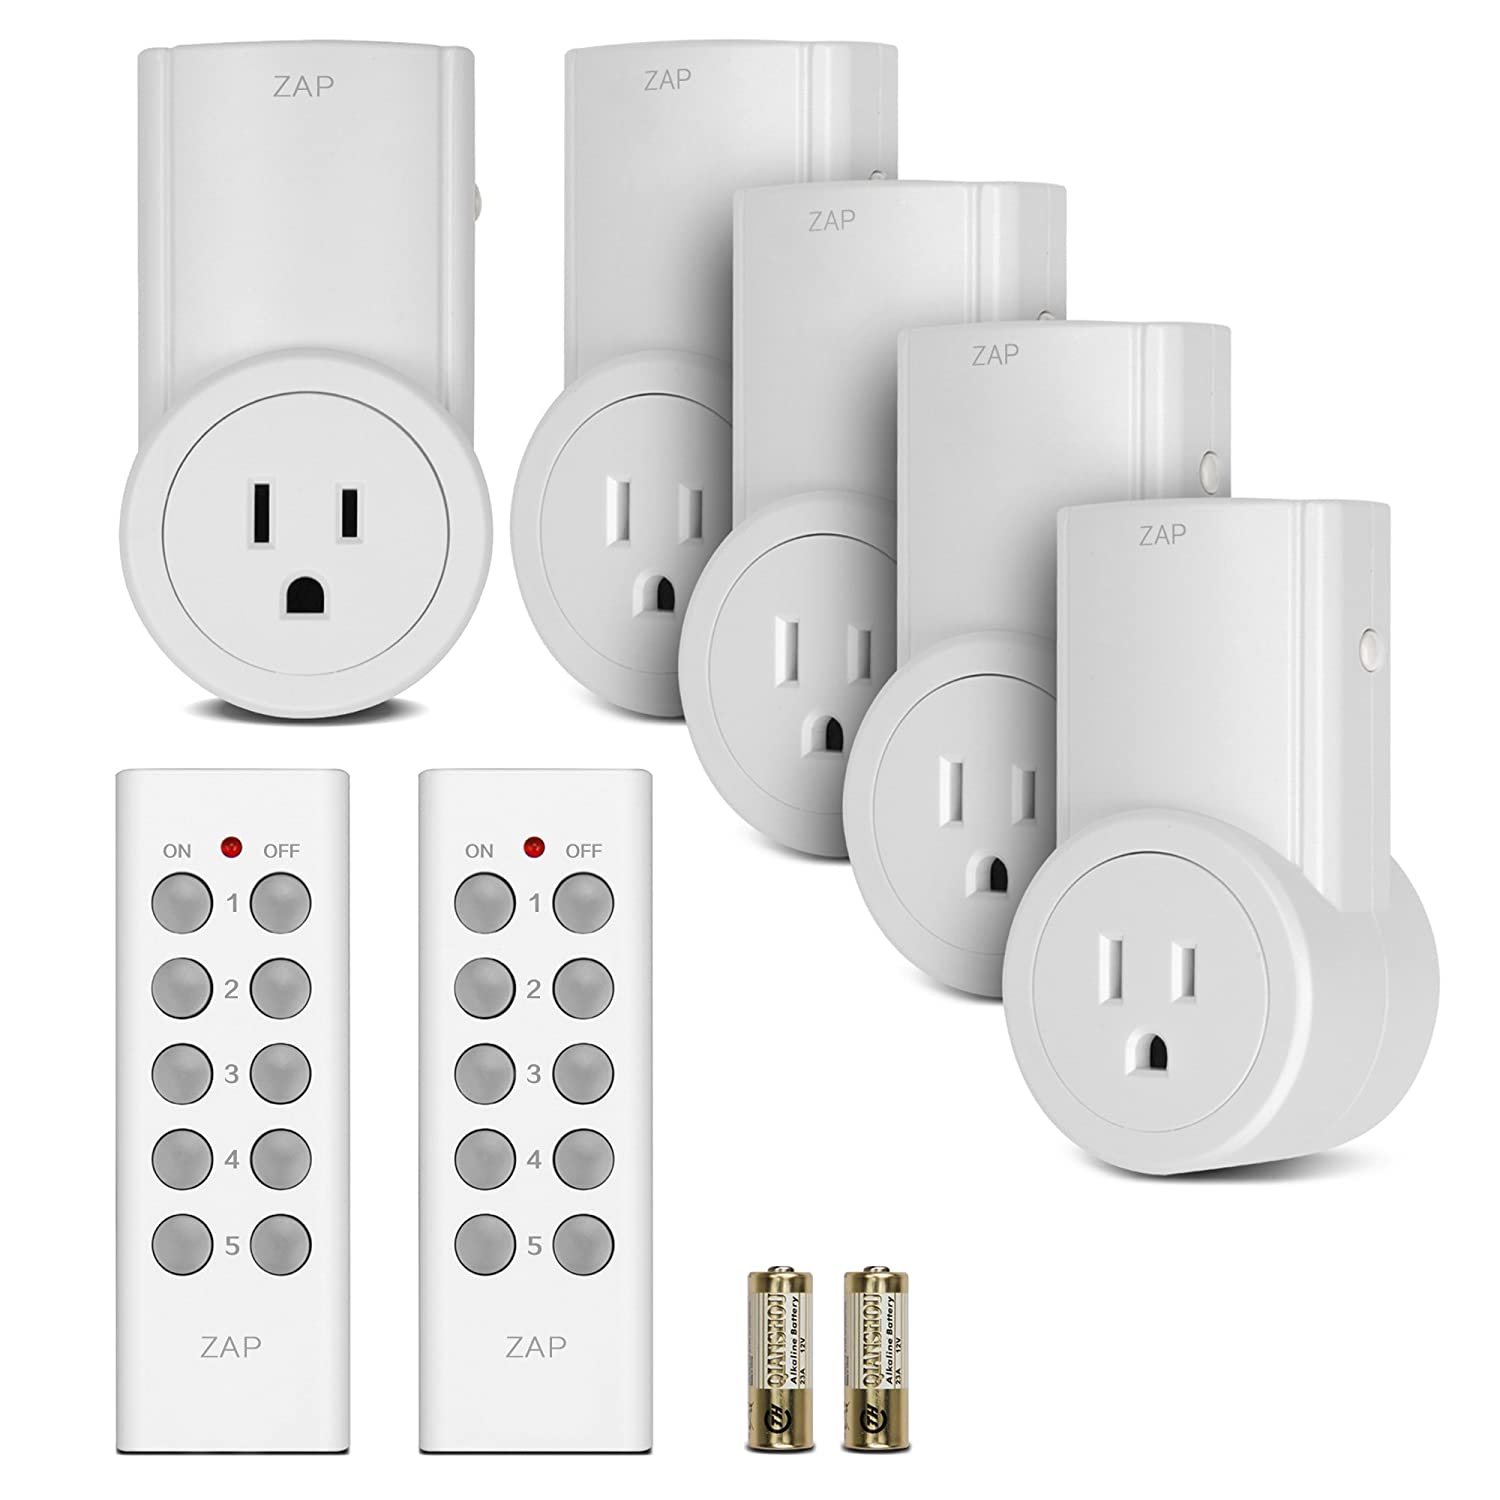 Etekcity Programmable Wireless Remote Control Electrical Outlet Light Switch Adapter & Converter Kit for Household Appliances